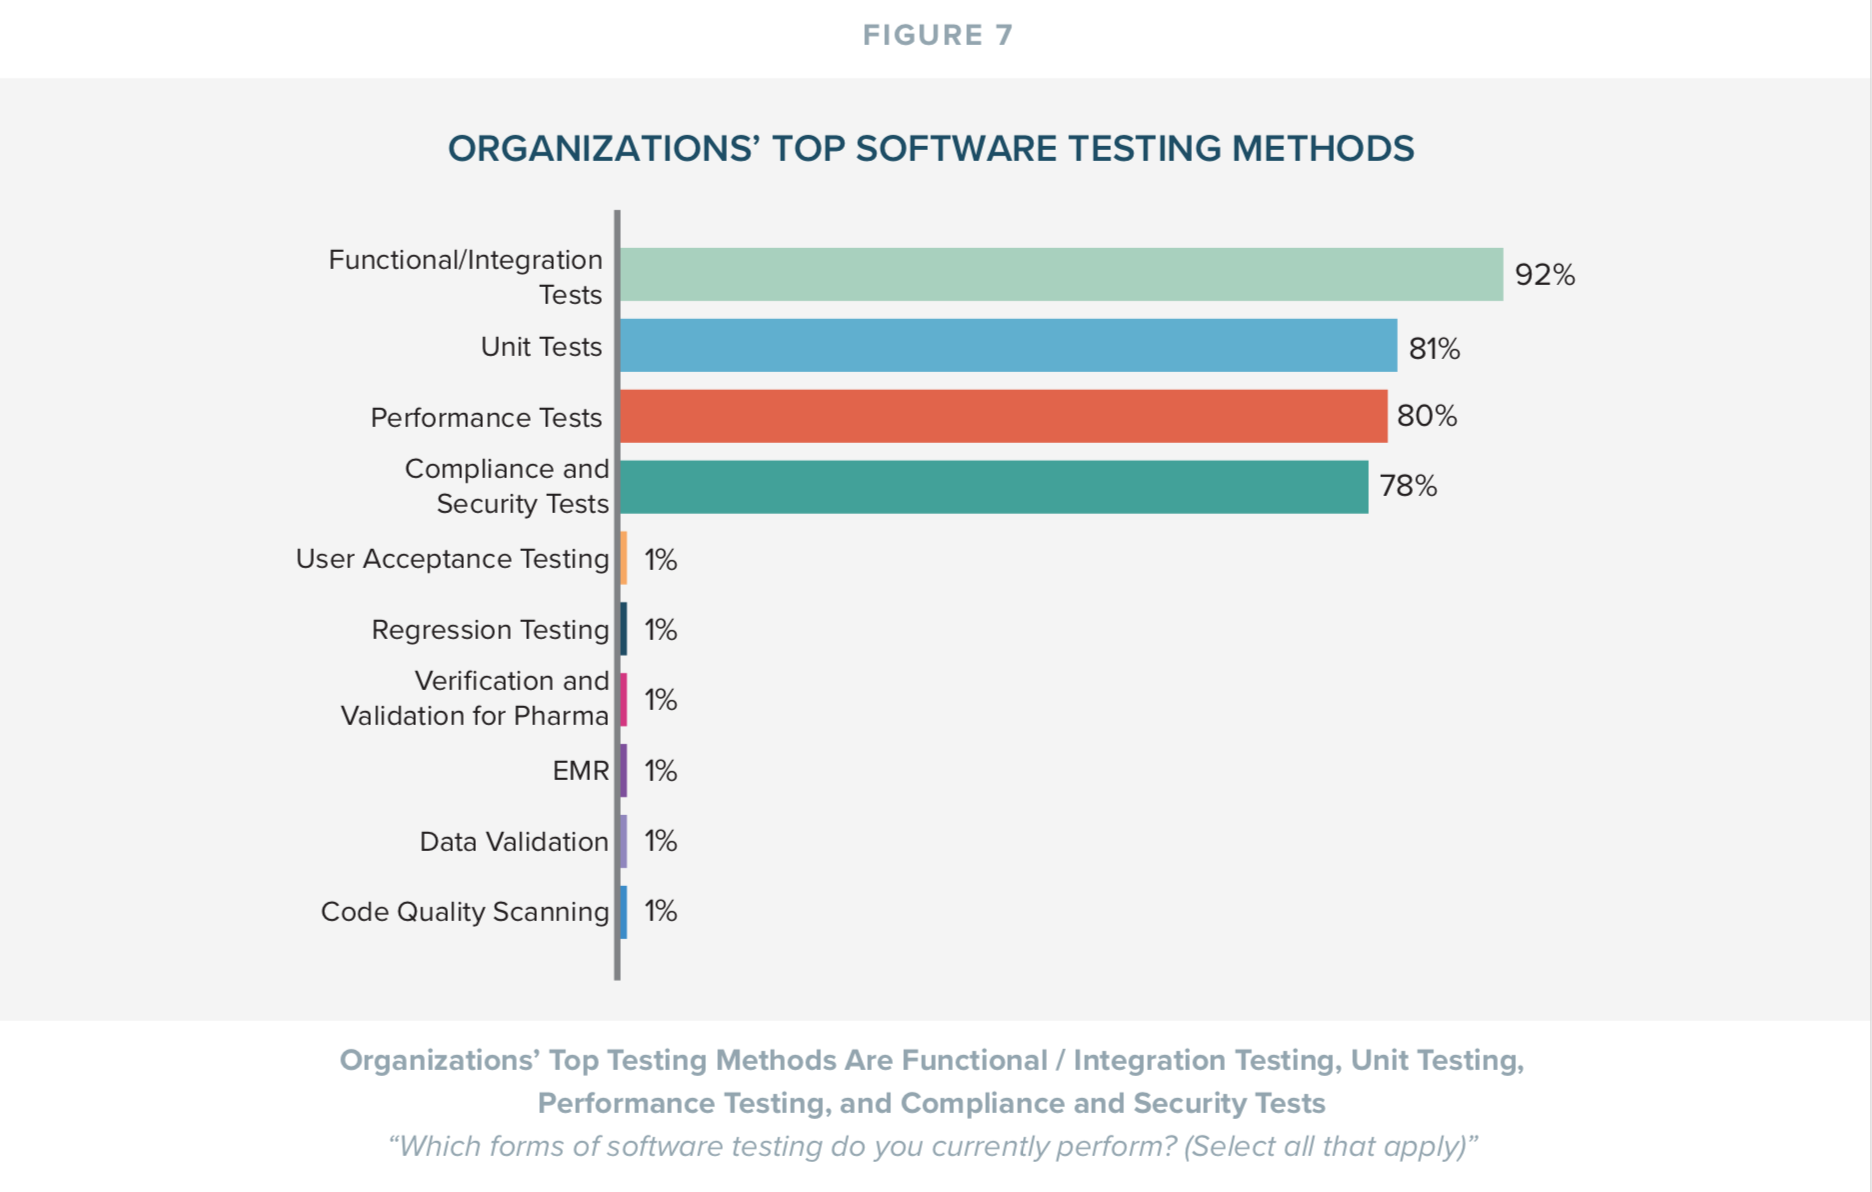 Organization's Top Software Testing Methods